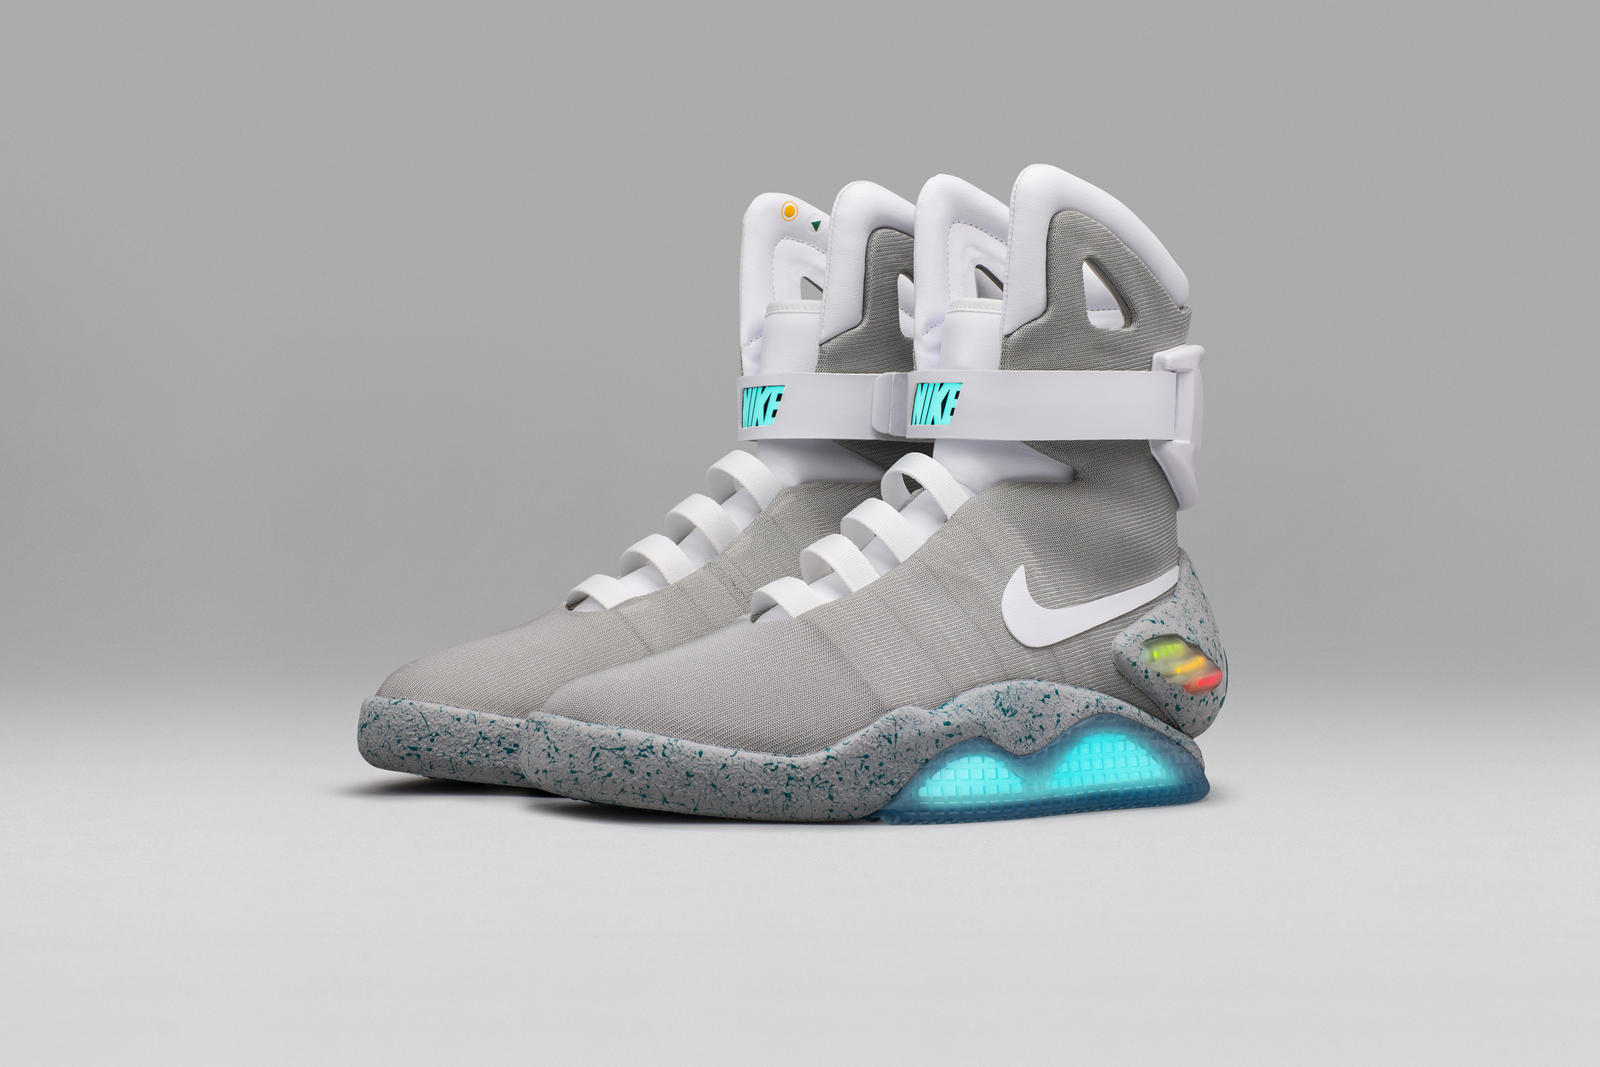 quality fantastic savings new collection NIKE MAG 2016 : 89 paires disponibles à travers le monde ...